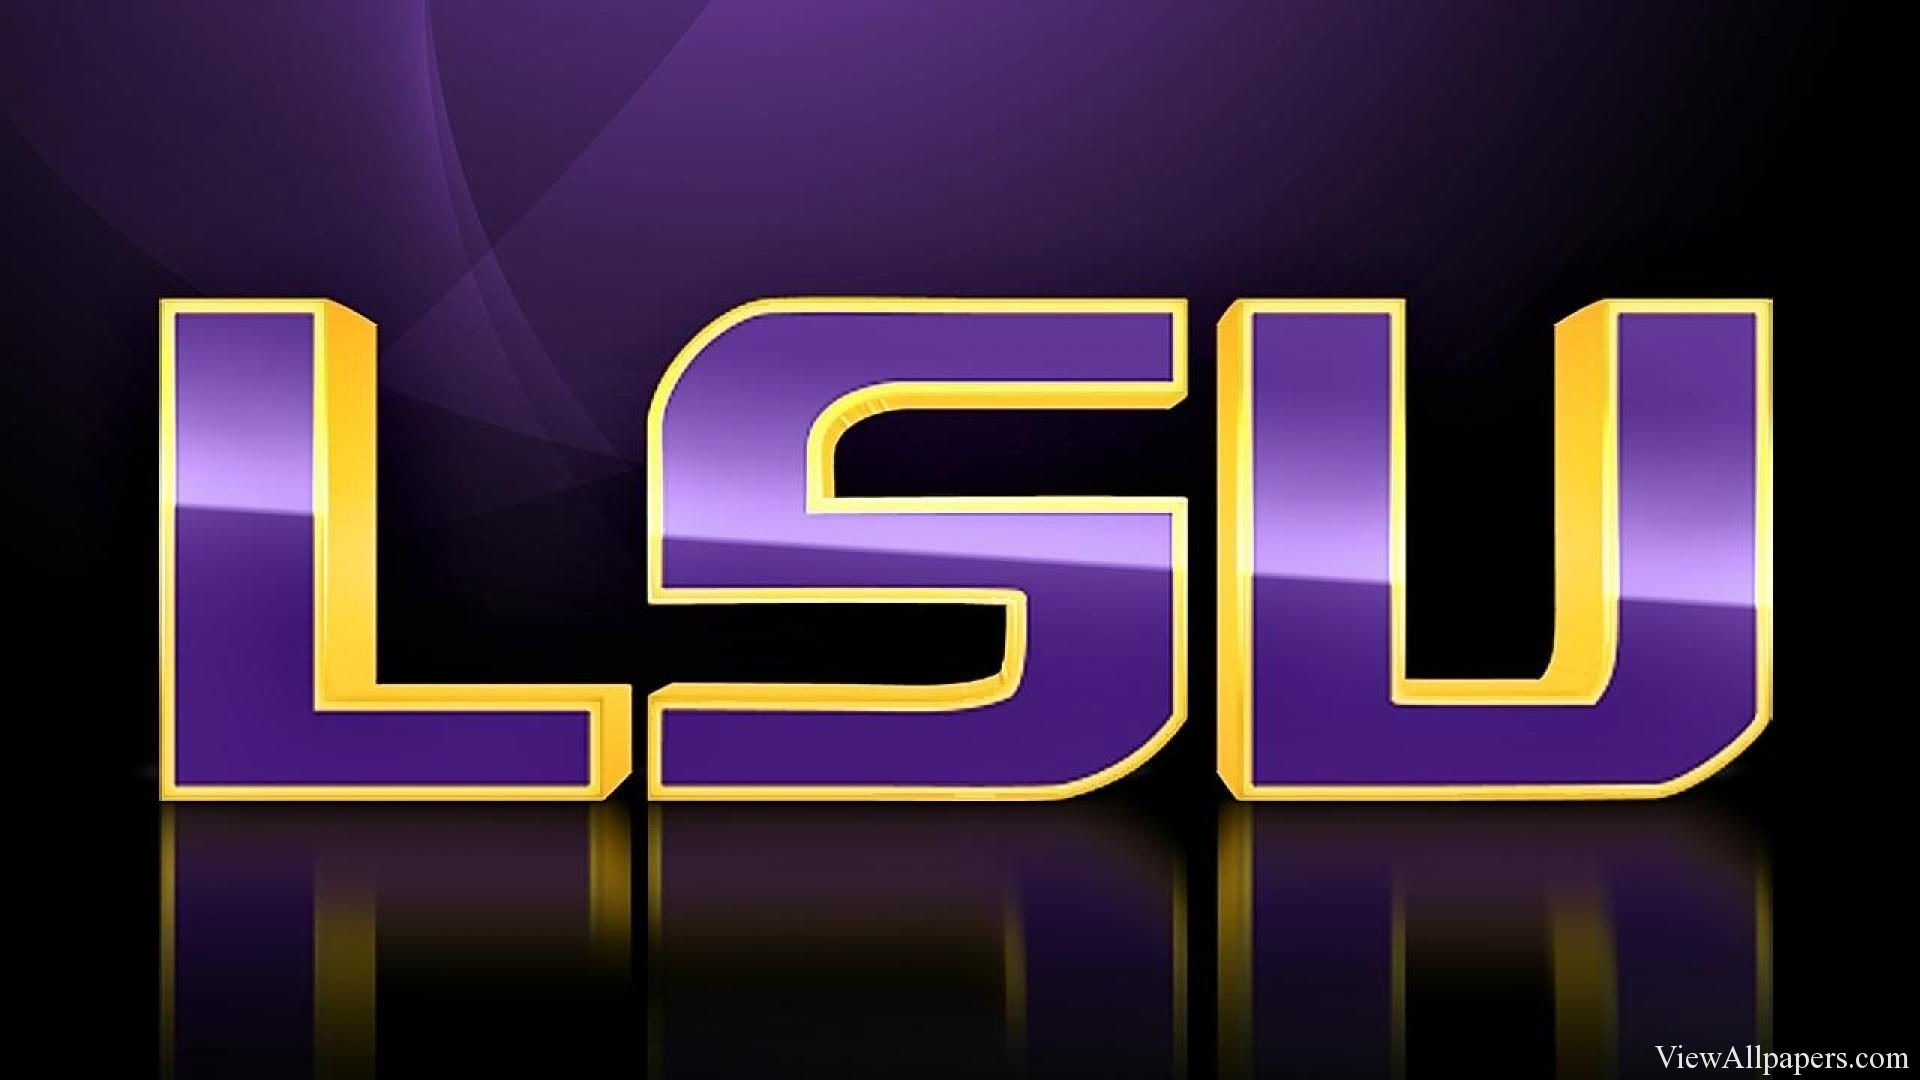 1920x1080 ... Download Lsu Football Wallpaper Wallpaper Desktop Background Full  Screen HD . You Can Also Upload And